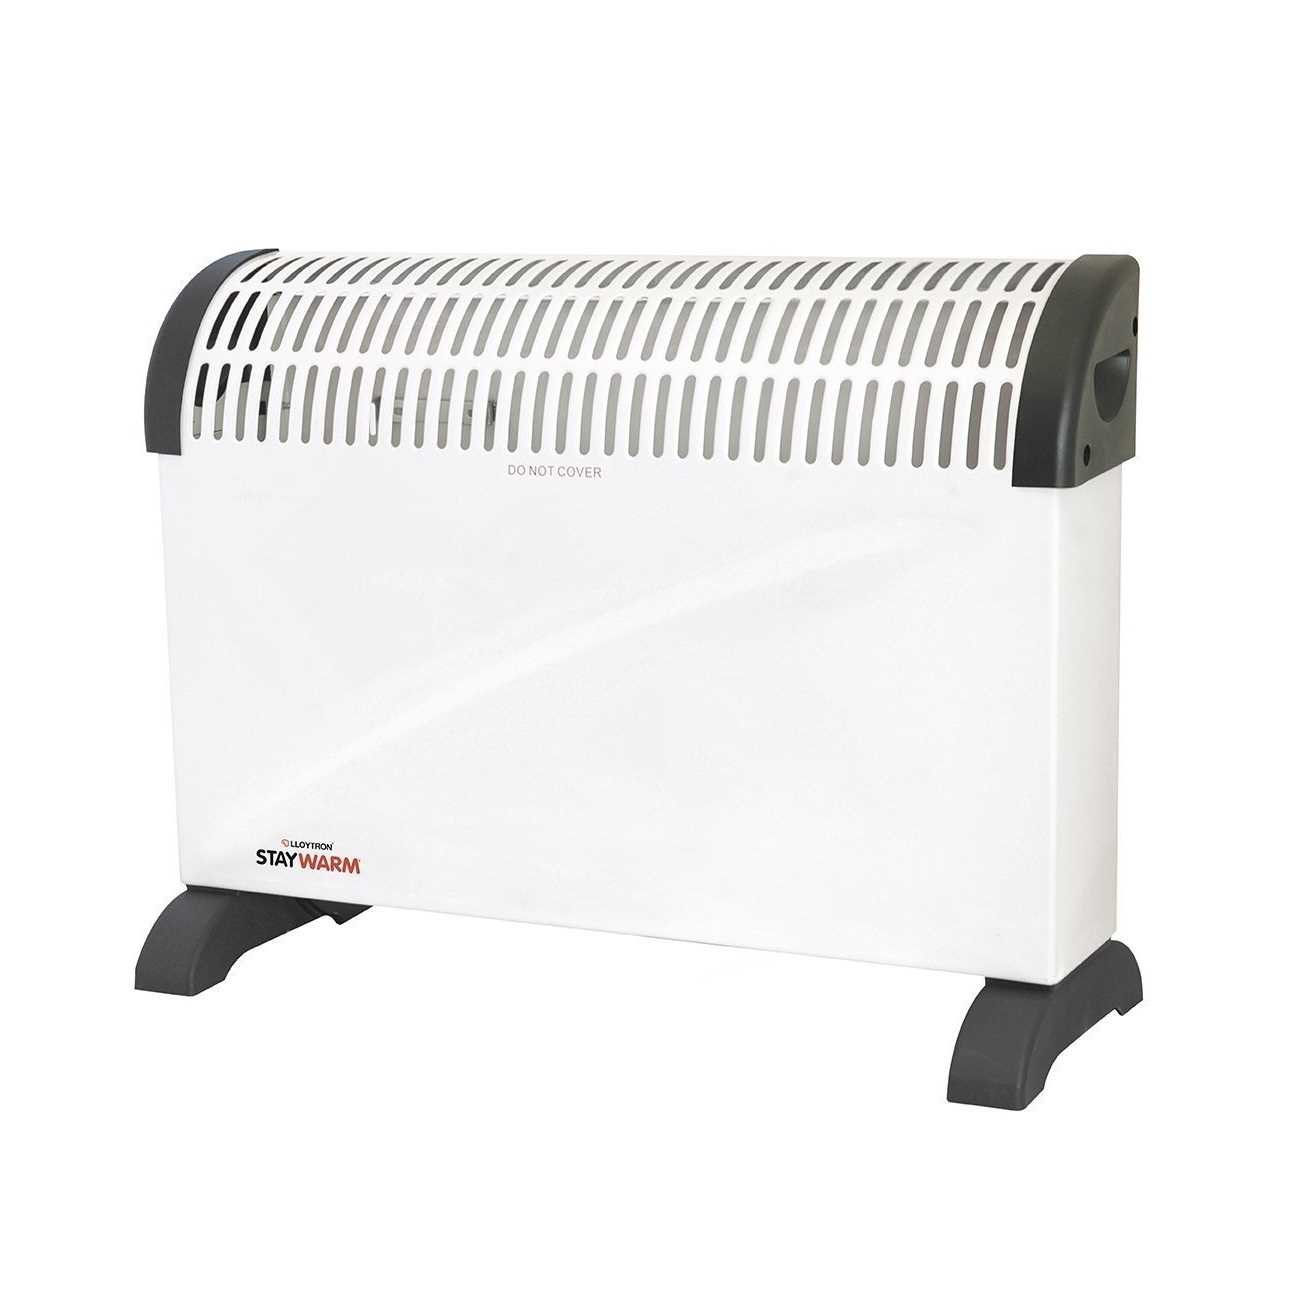 Lloytron Stay Warm F2403WH Convector Room Heater